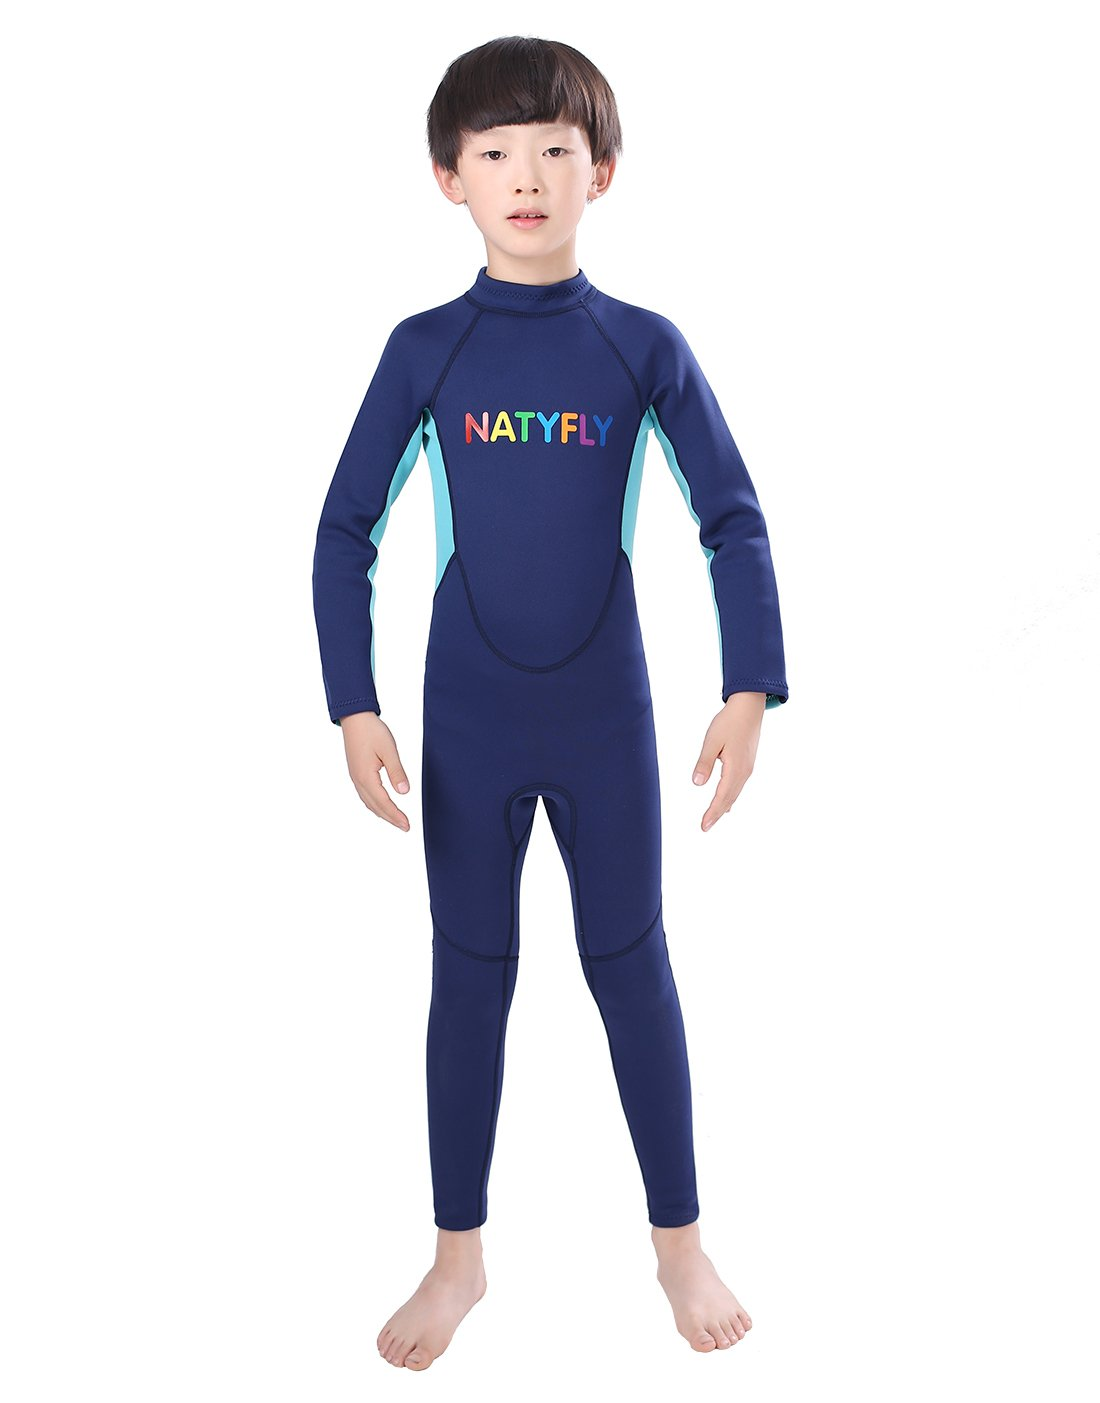 NATYFLY Neoprene Wetsuits for Kids Boys Girls Back Zipper One Piece Swimsuit UV Protection Blue-2mm-Long Sleeve, S-for Height 32''-37''